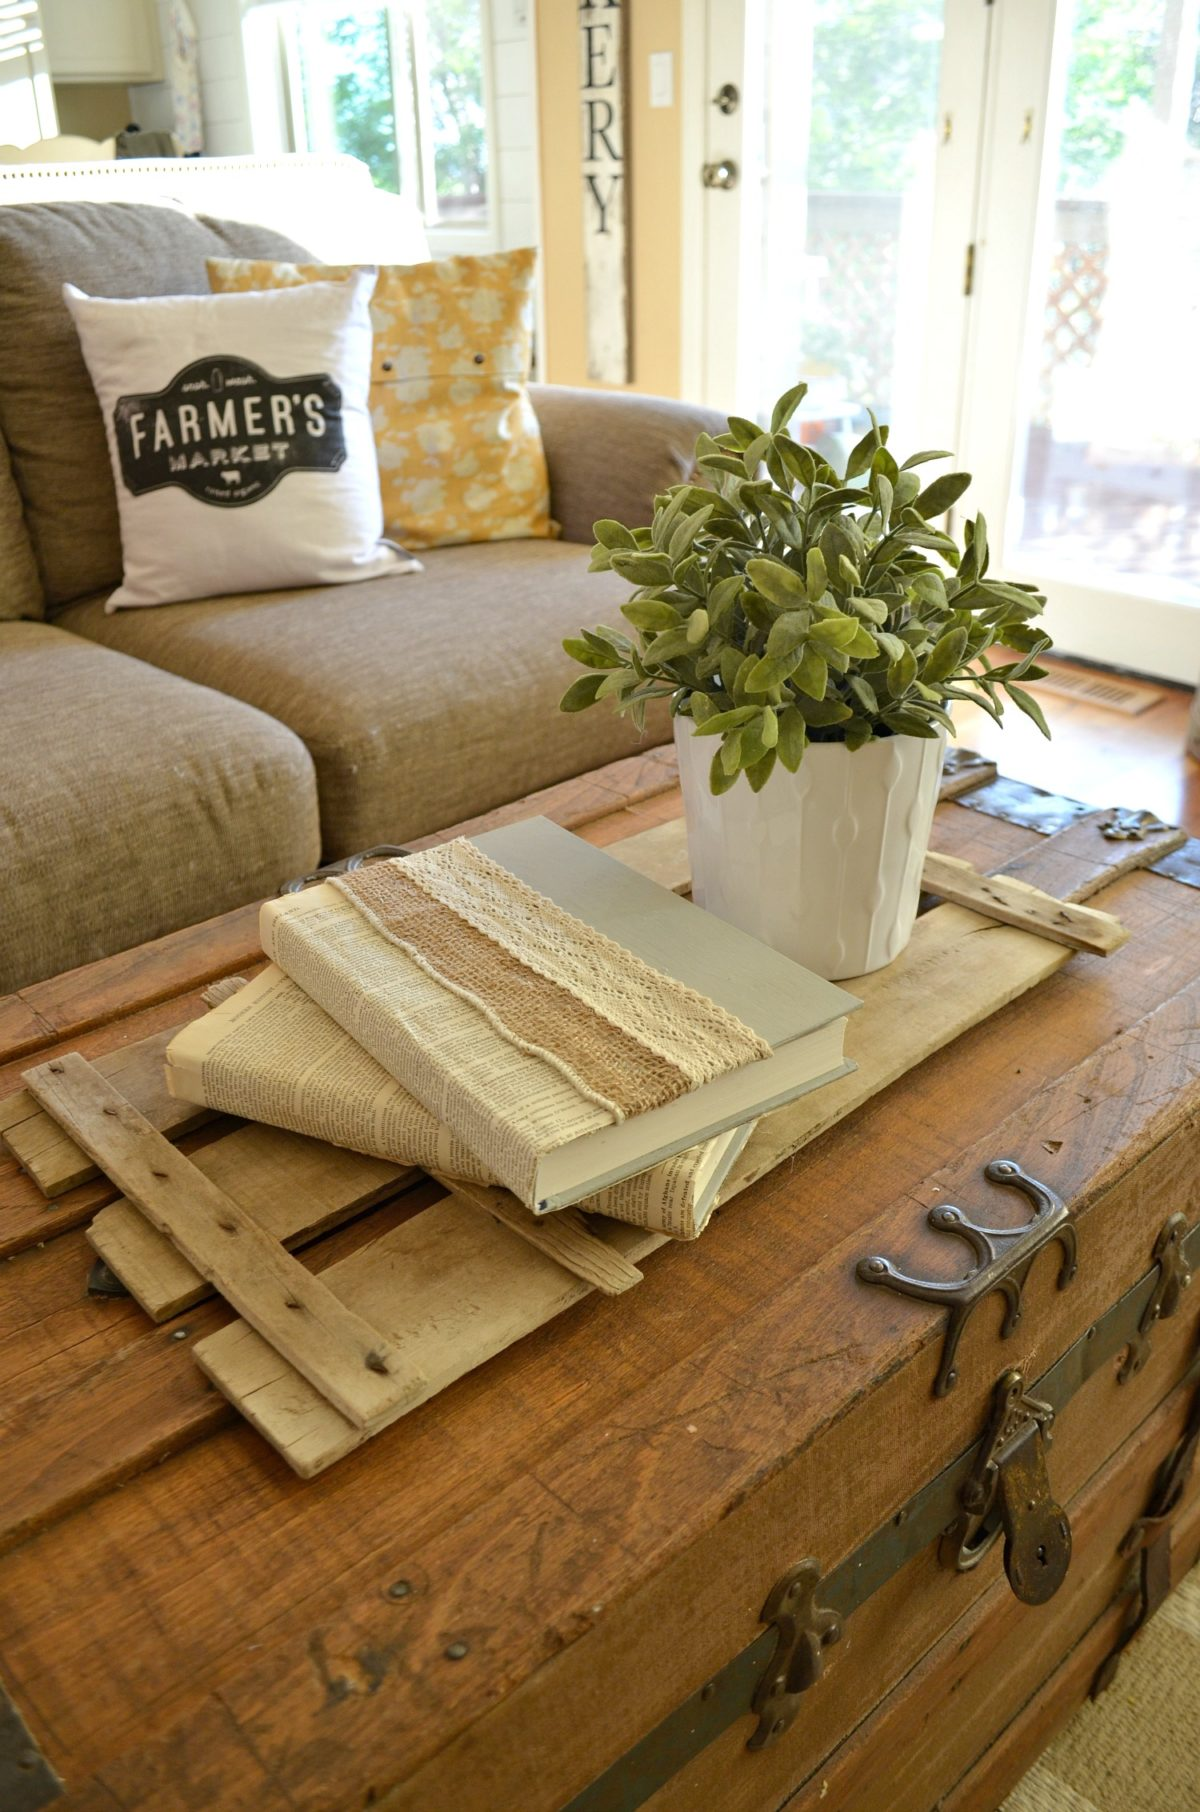 DIY Lace And Burlap Books